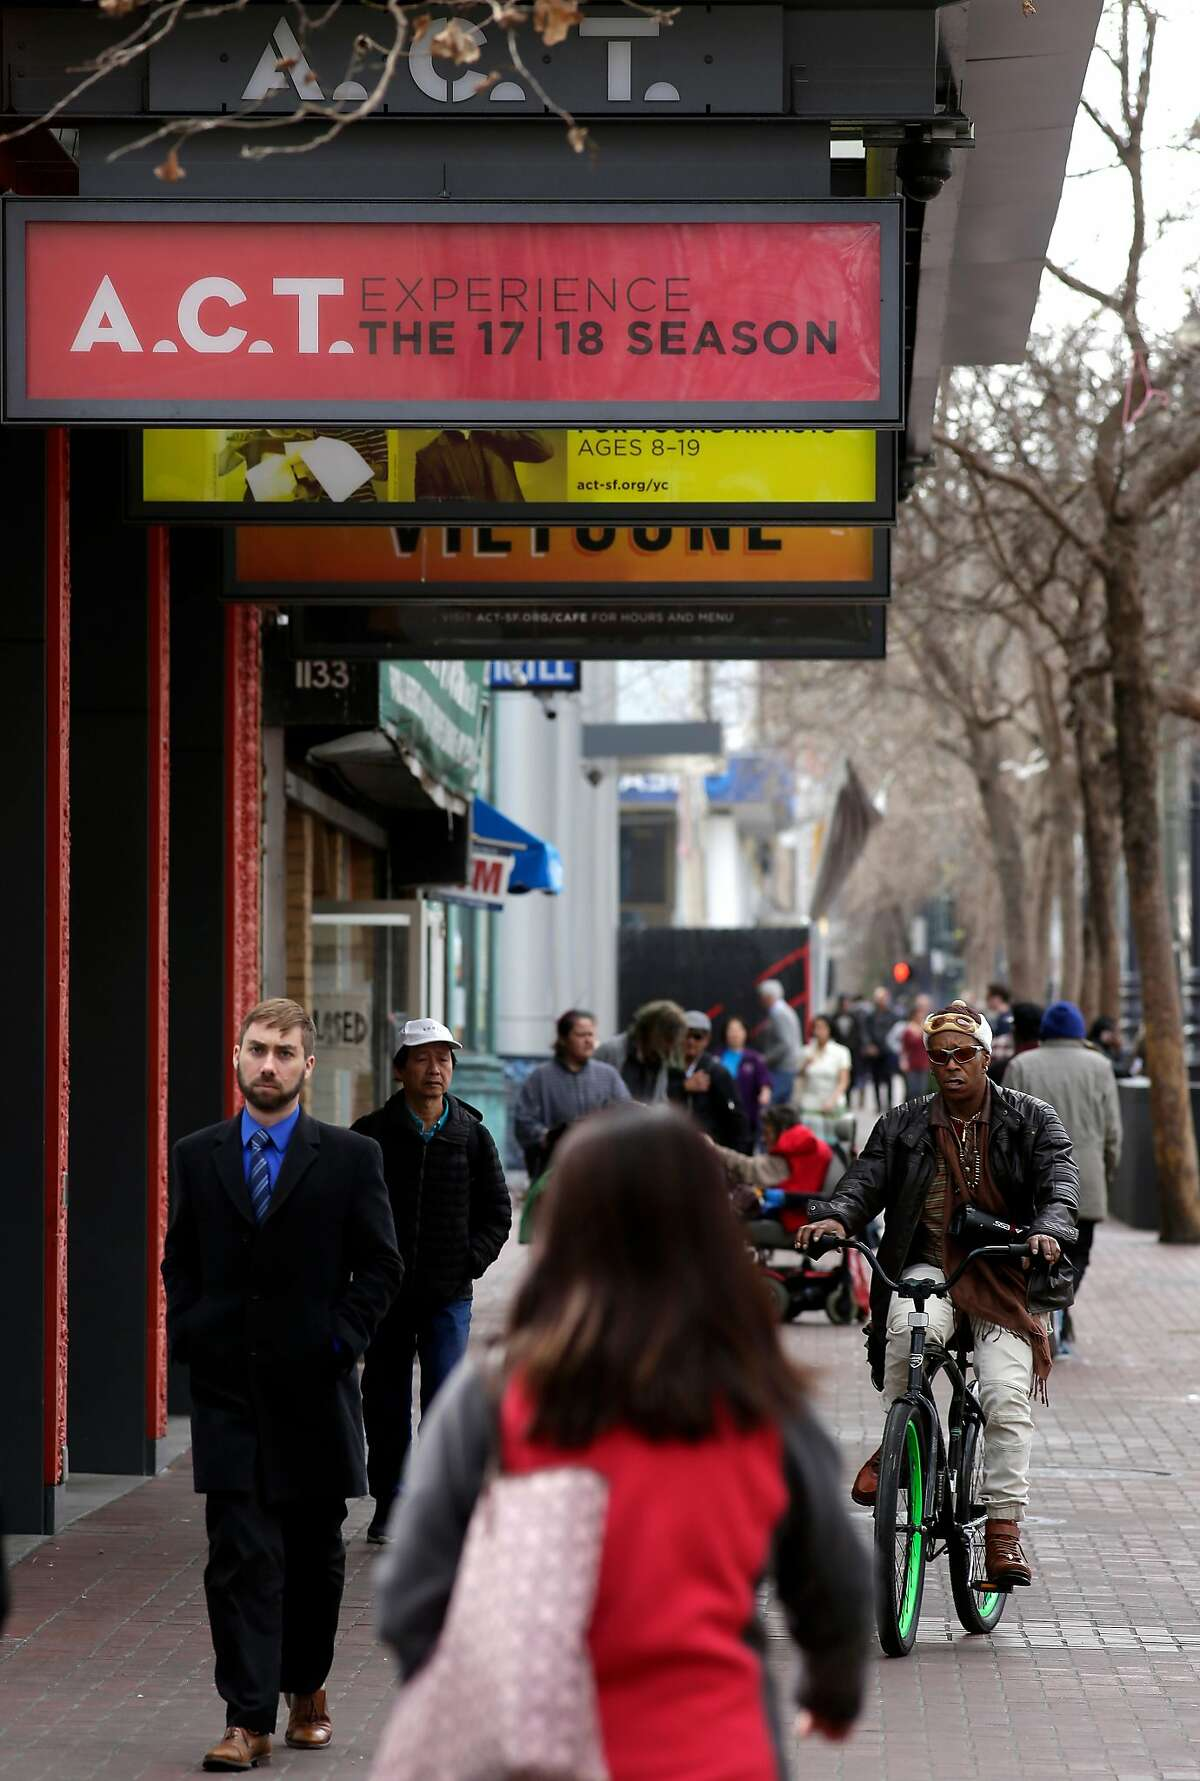 The American Conservatory Theater in San Francisco, Calif., seen on Wednesday Feb. 14, 2018. The A.C.T. faces quality of life issues with it's location in the heart of Market st. between 7th and 8th streets.